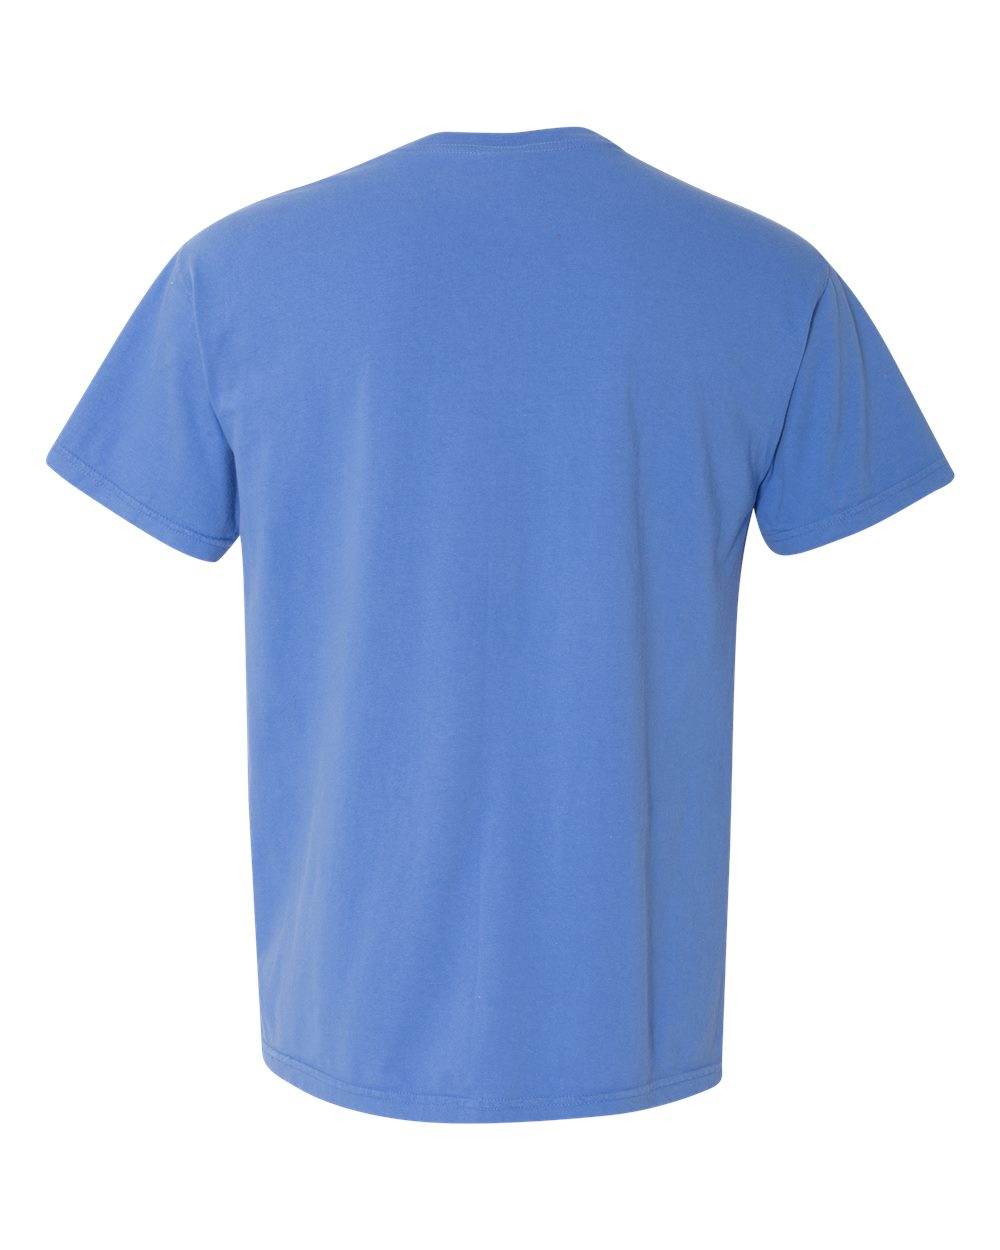 Comfort-Colors-Men-039-s-6-1-oz-Garment-Dyed-Pocket-T-Shirt-6030CC-S-3XL thumbnail 96